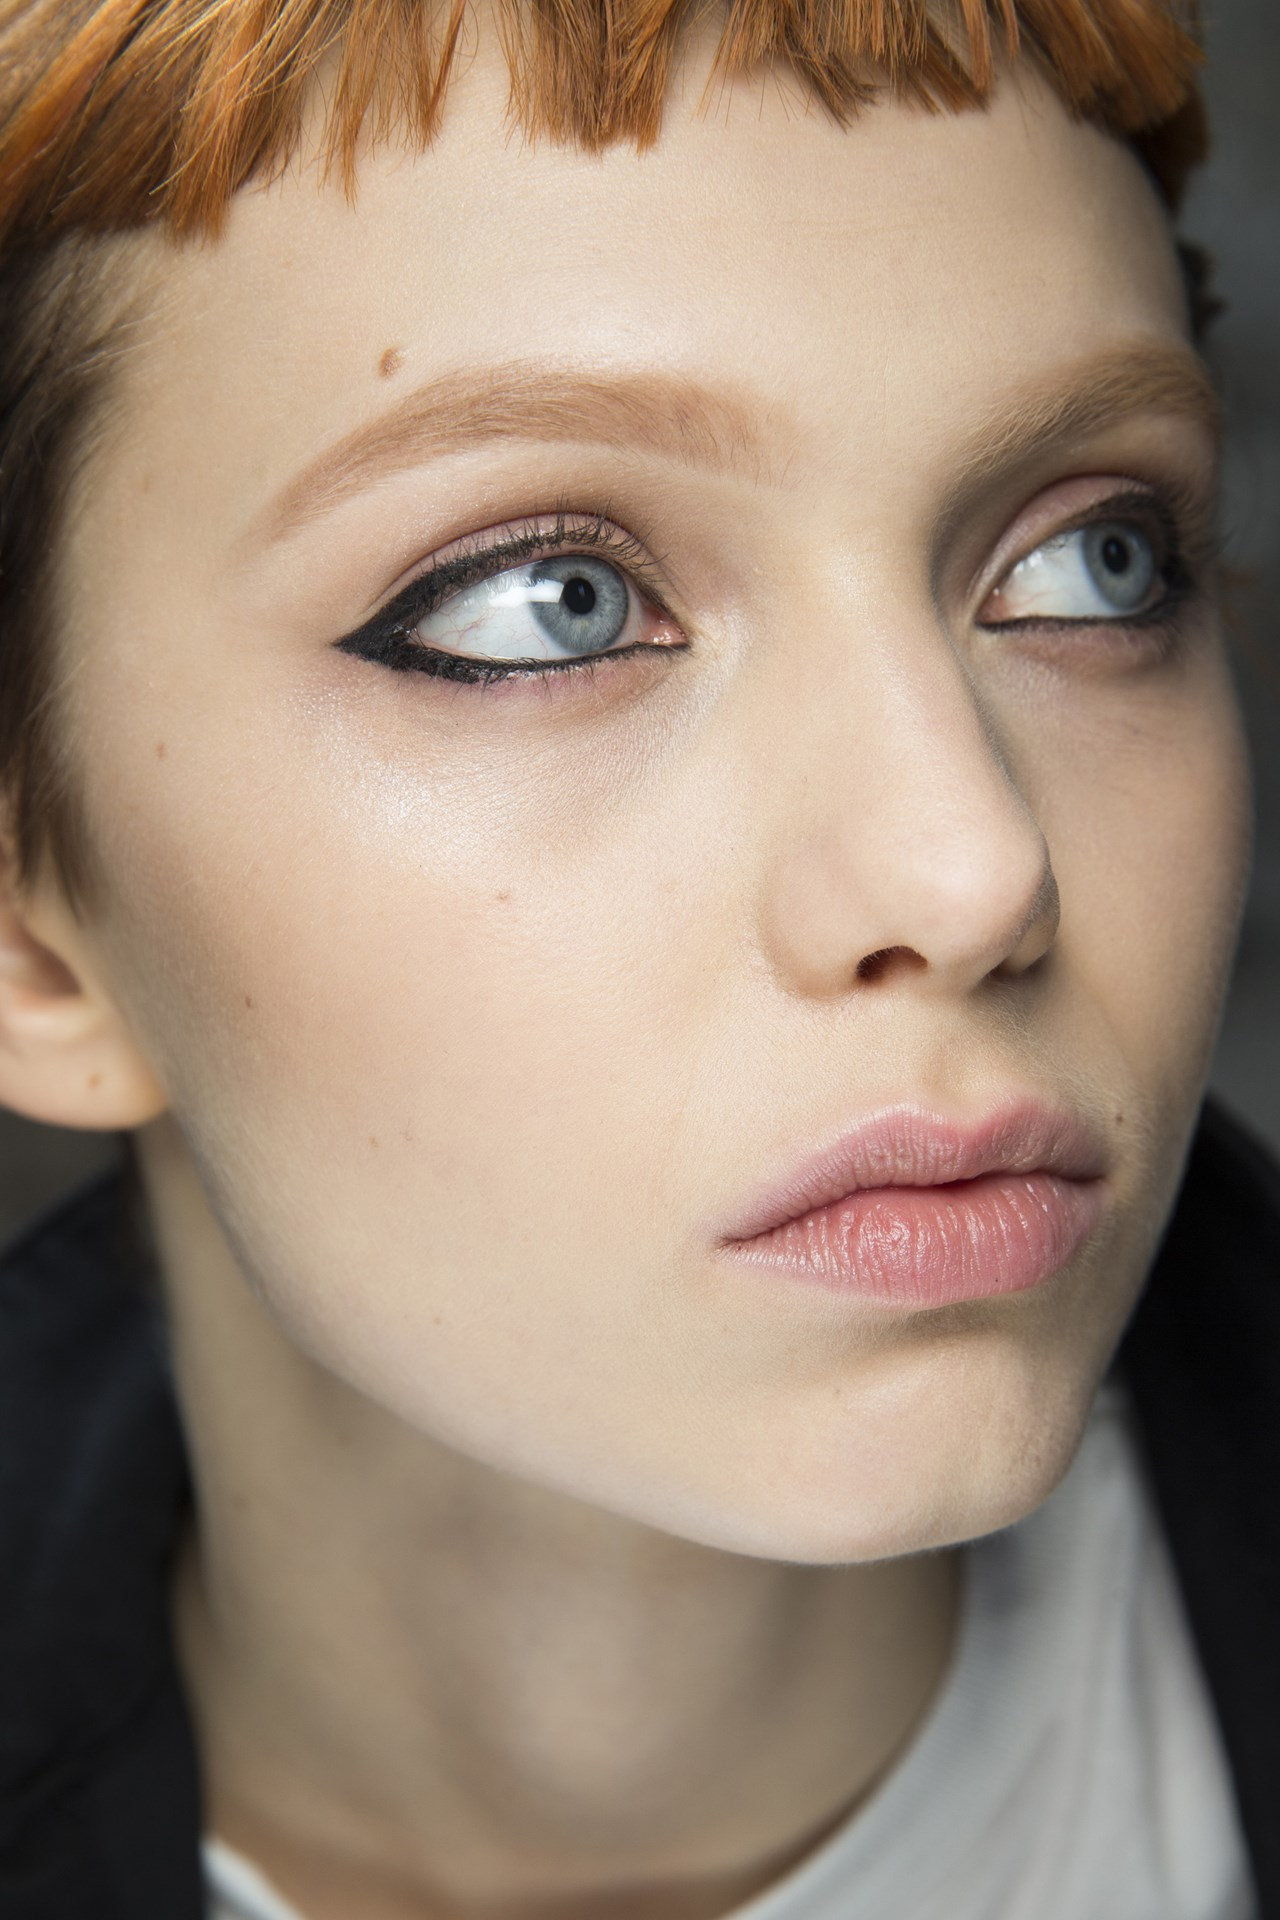 Emilio Pucci - Diane Kendal created a graphic black liner look at Emilio Pucci, complemented by clean skin and a little cream shadow around the eyes.